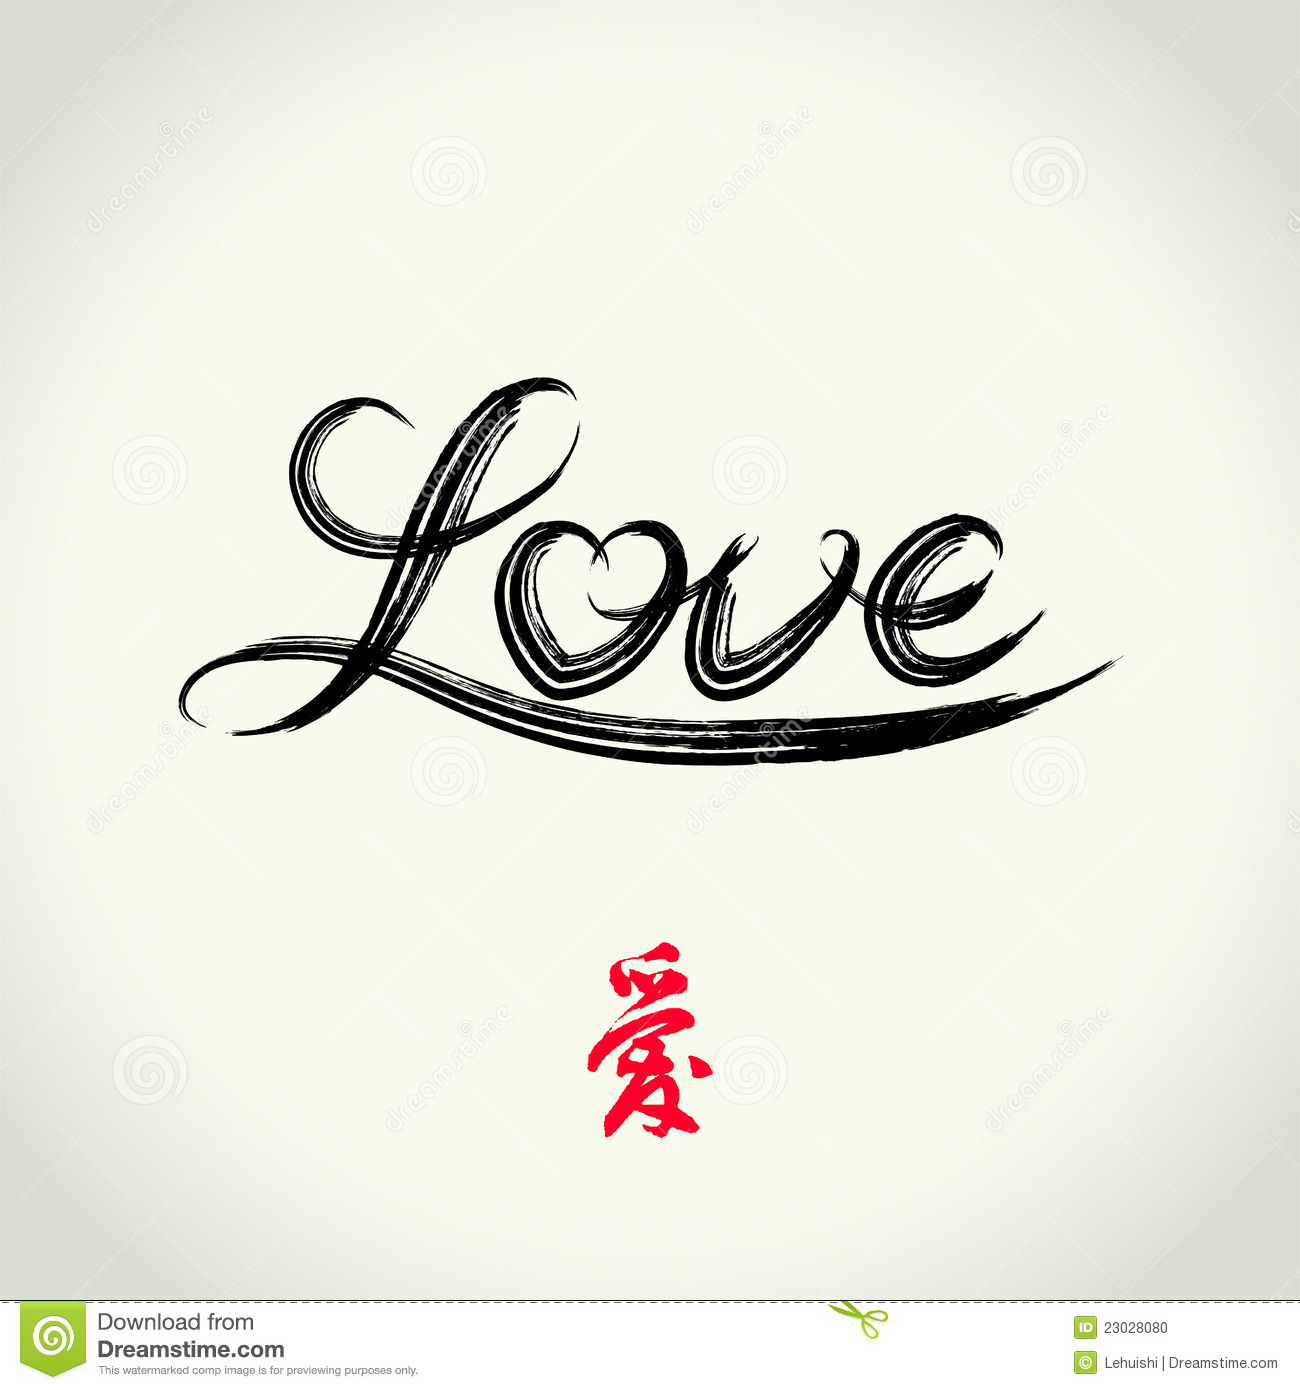 I Love You In Cursive Letters